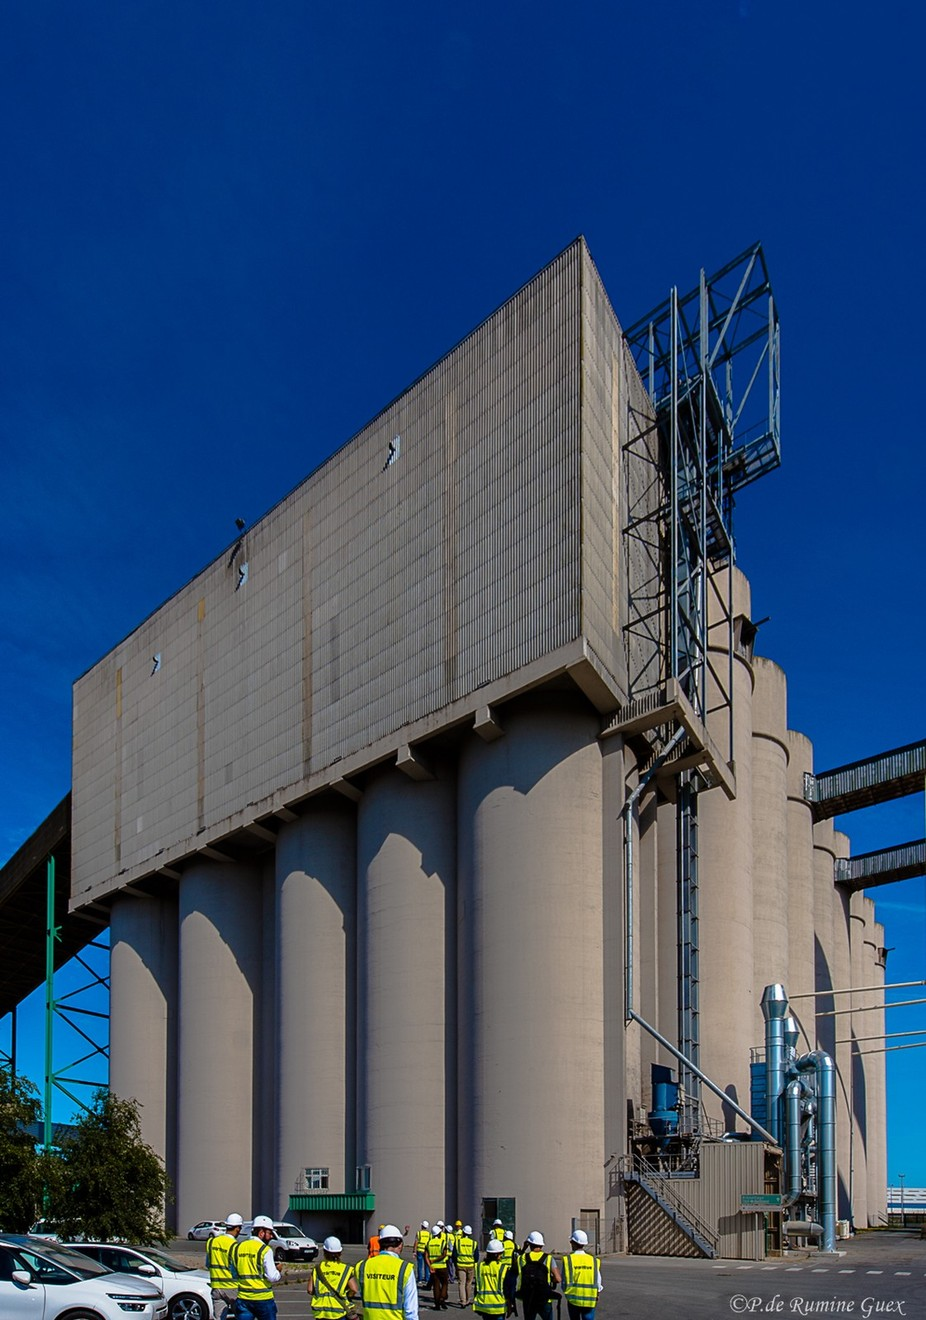 Cereal Silos at la Rochelle la Pallice Port. The SICA Atlantic Coop. ship 6 million tons of cereals from these silos around the world